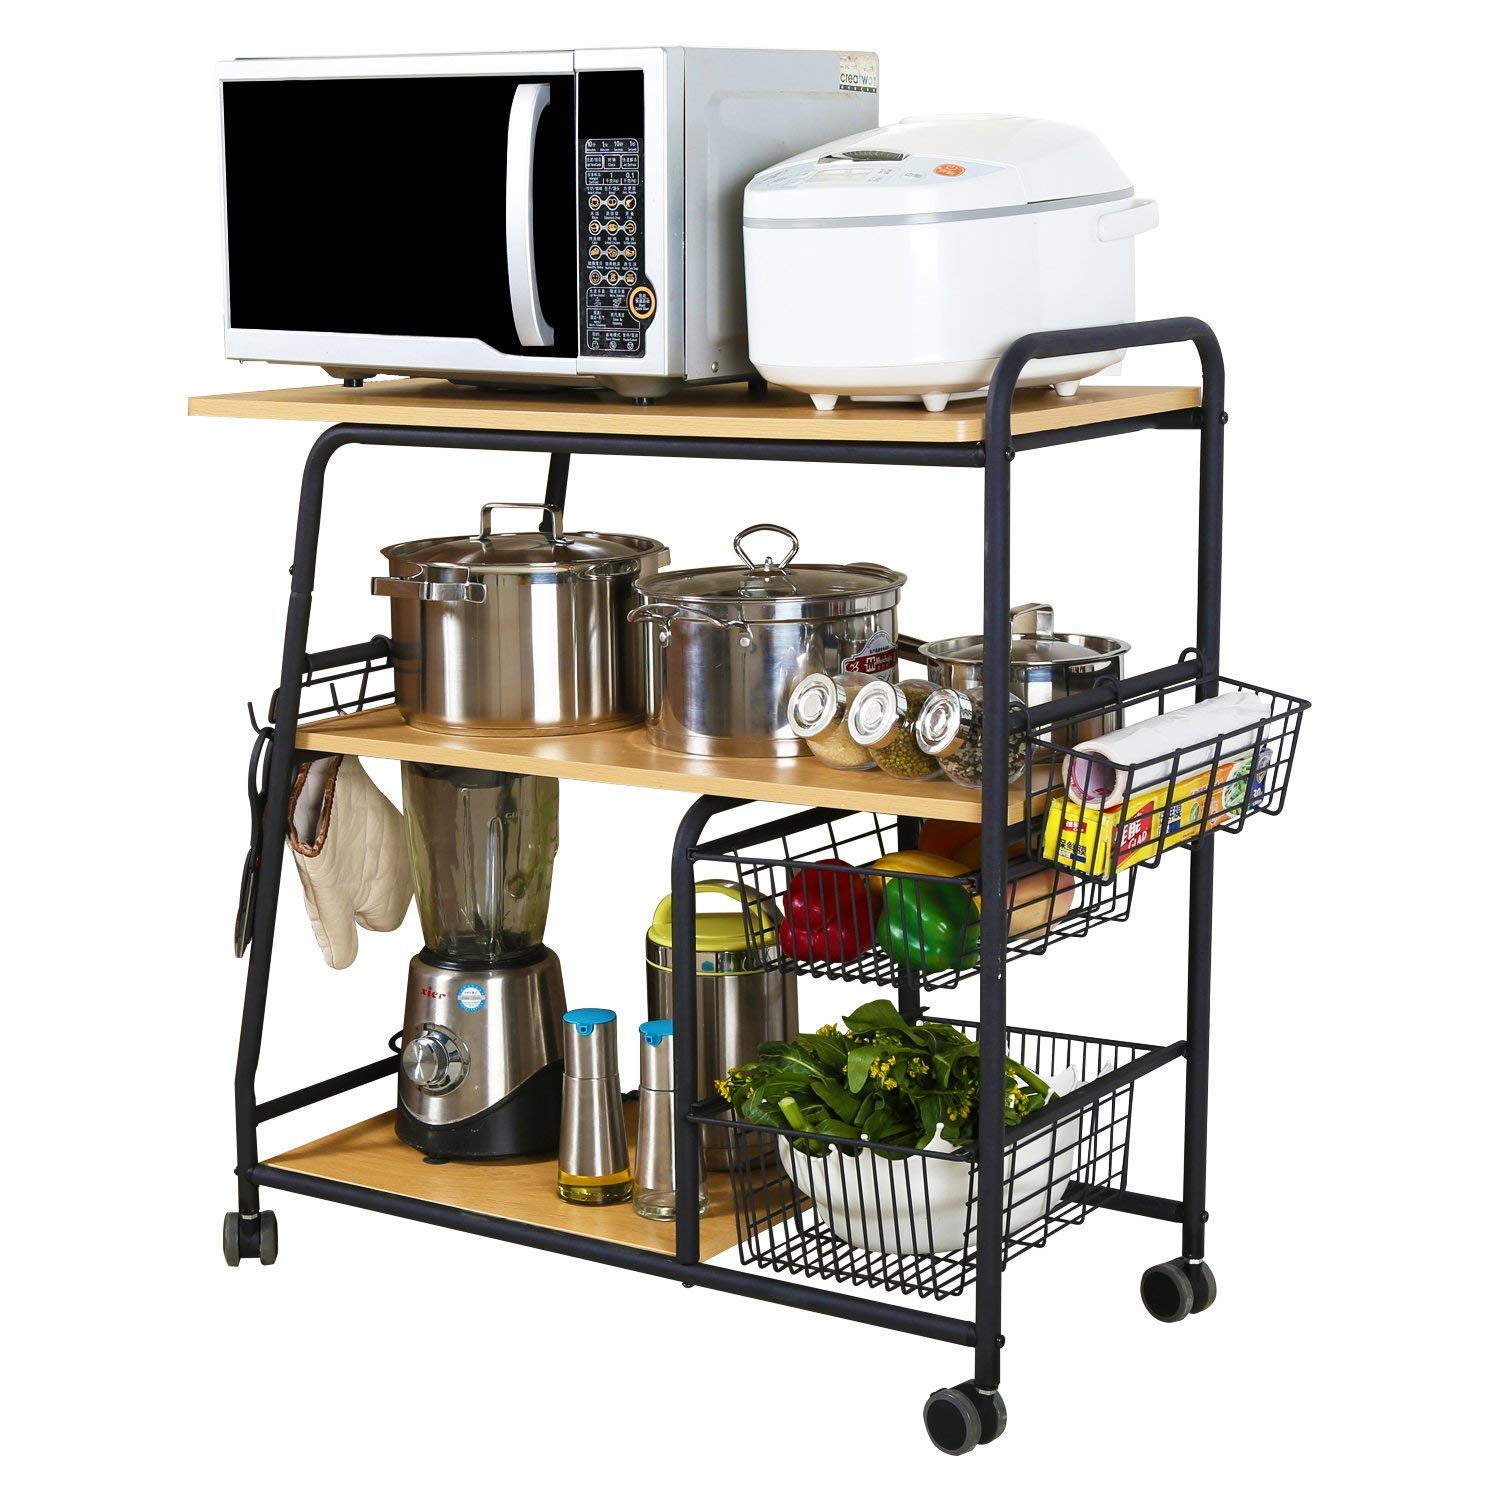 1208S Kitchen Storage Cart Serving Cart Bar Cart on Wheels with Storage Rack, 3-Tier 08CW12640002